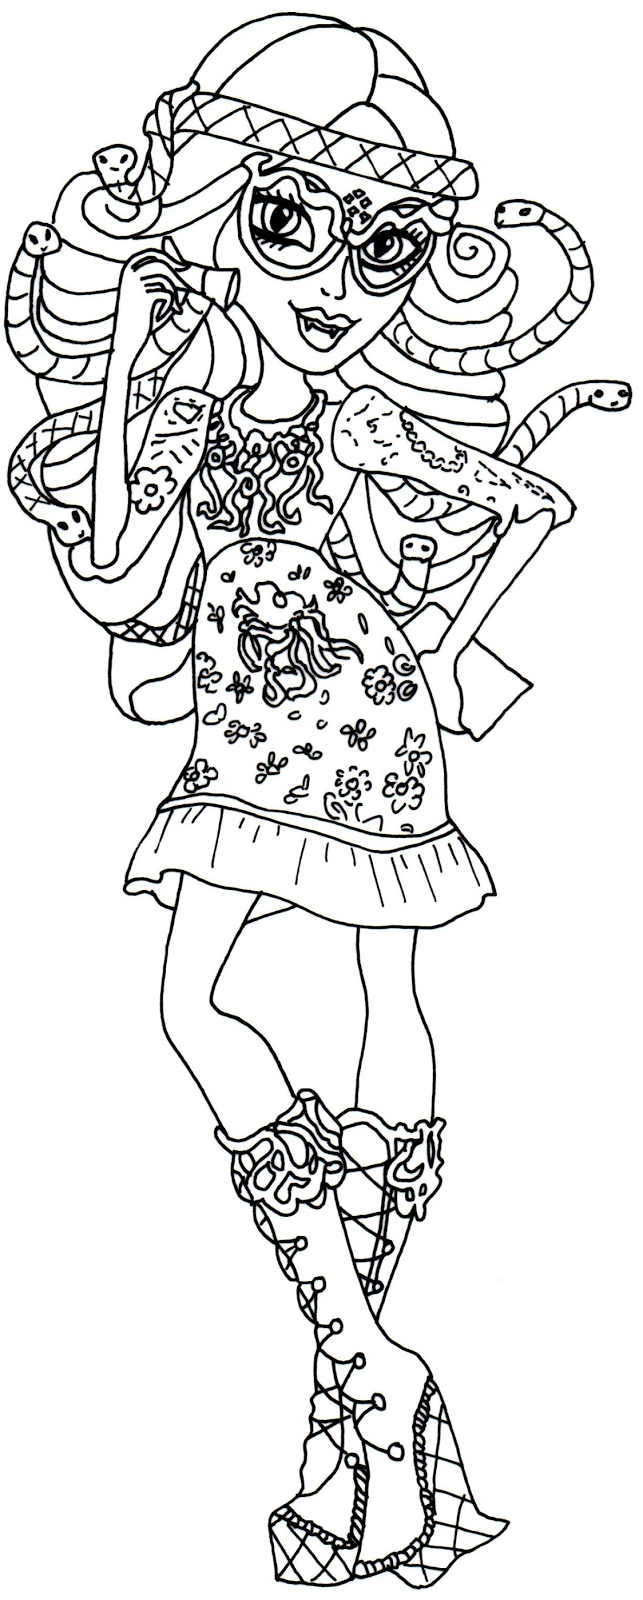 new monster high dolls 2014 coloring pages: Viperine